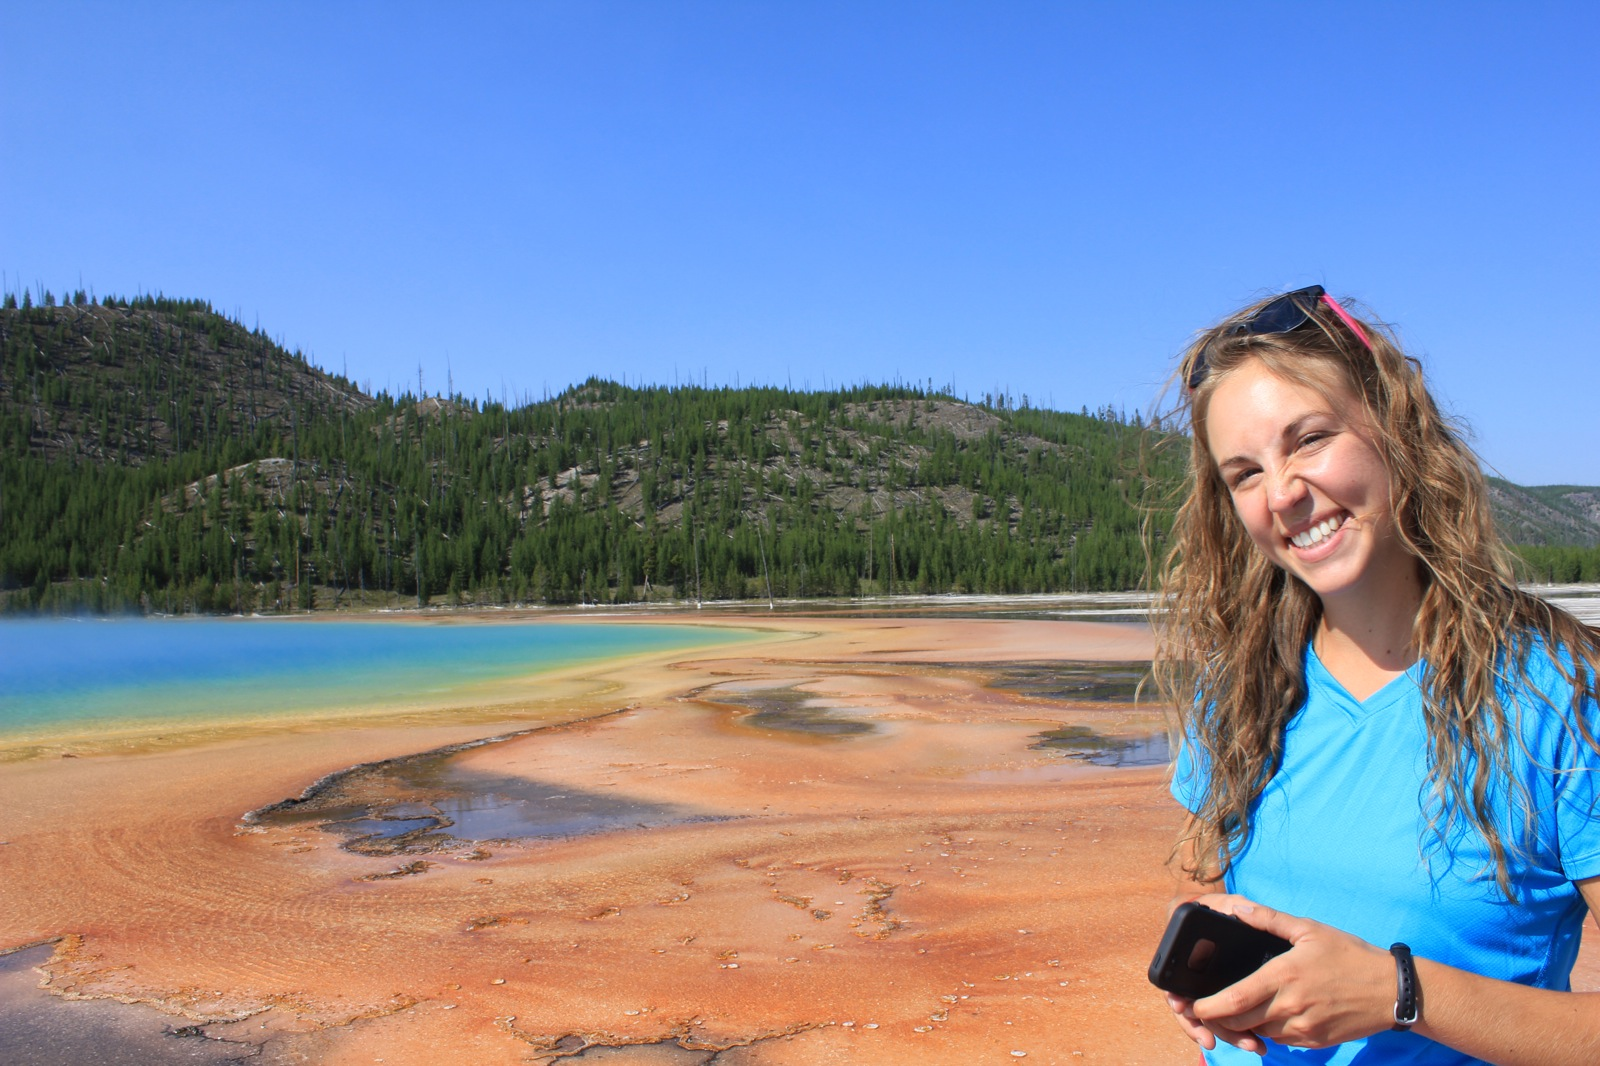 A woman poses in front of the blues, greens, yellows, and oranges of Grand Prismatic Spring, the park's largest hot spring.